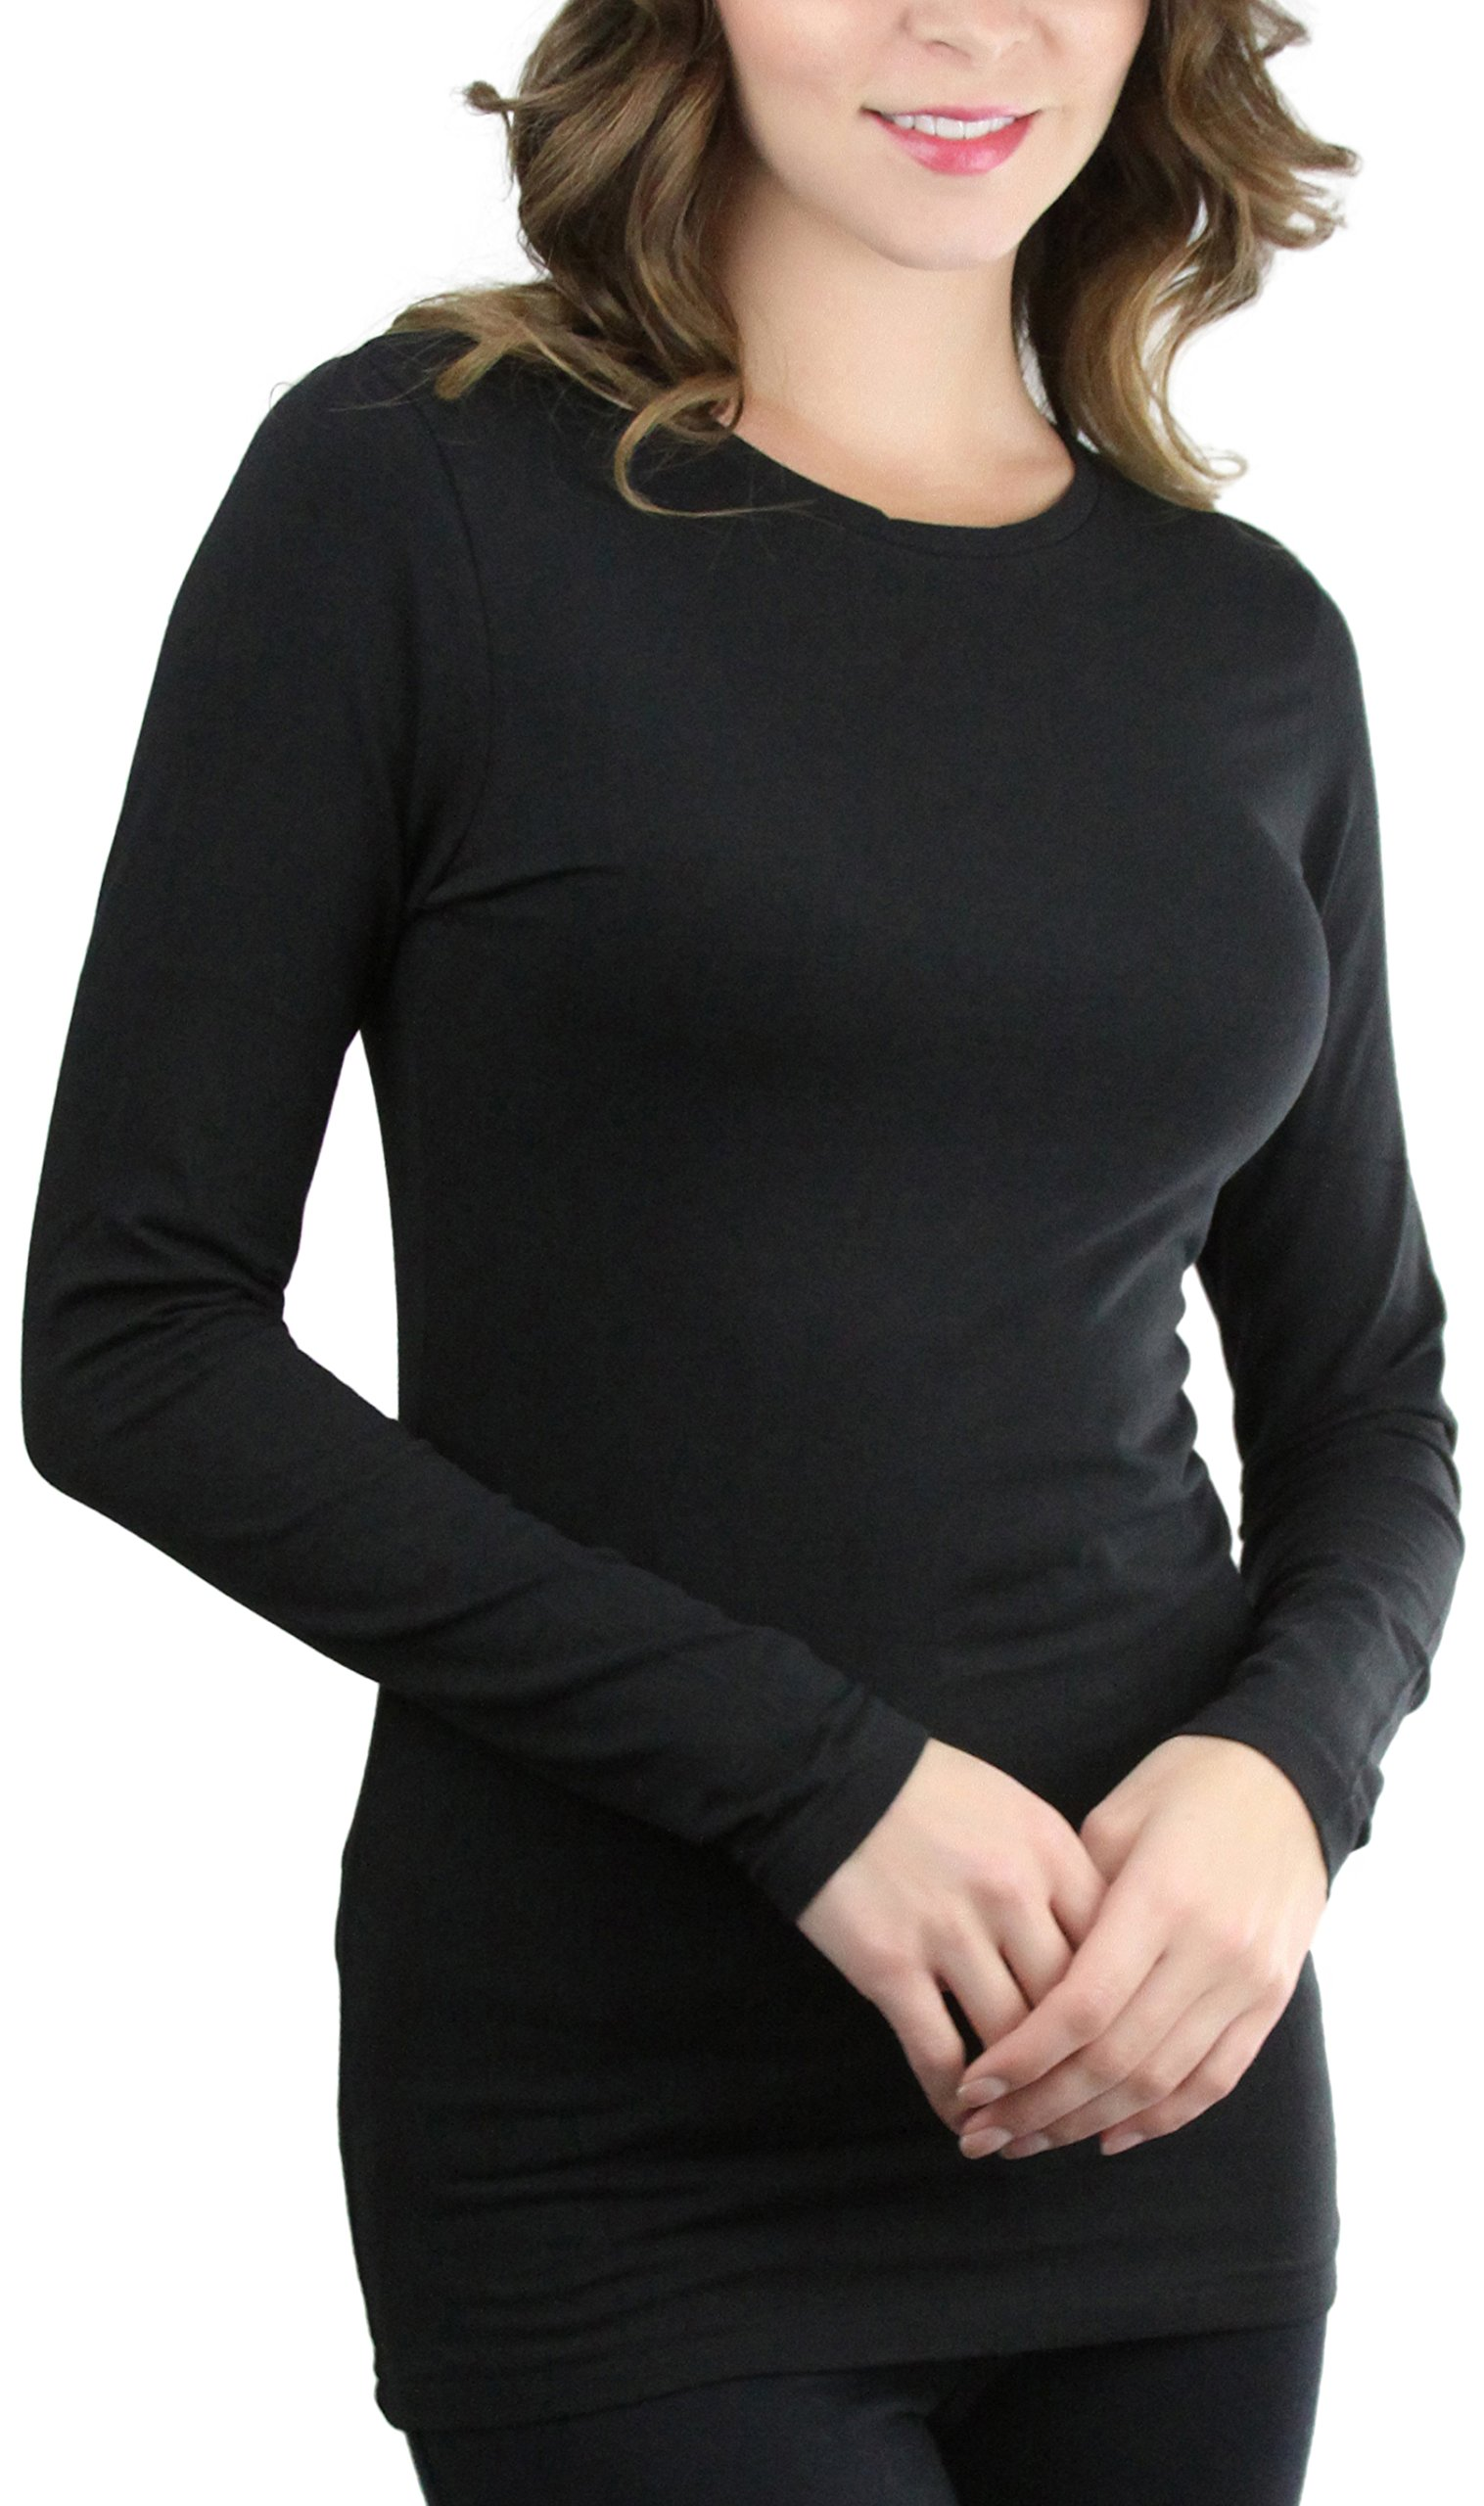 ToBeInStyle Women's Long Sleeve Round Crew Neck T-Shirt - Black - Medium